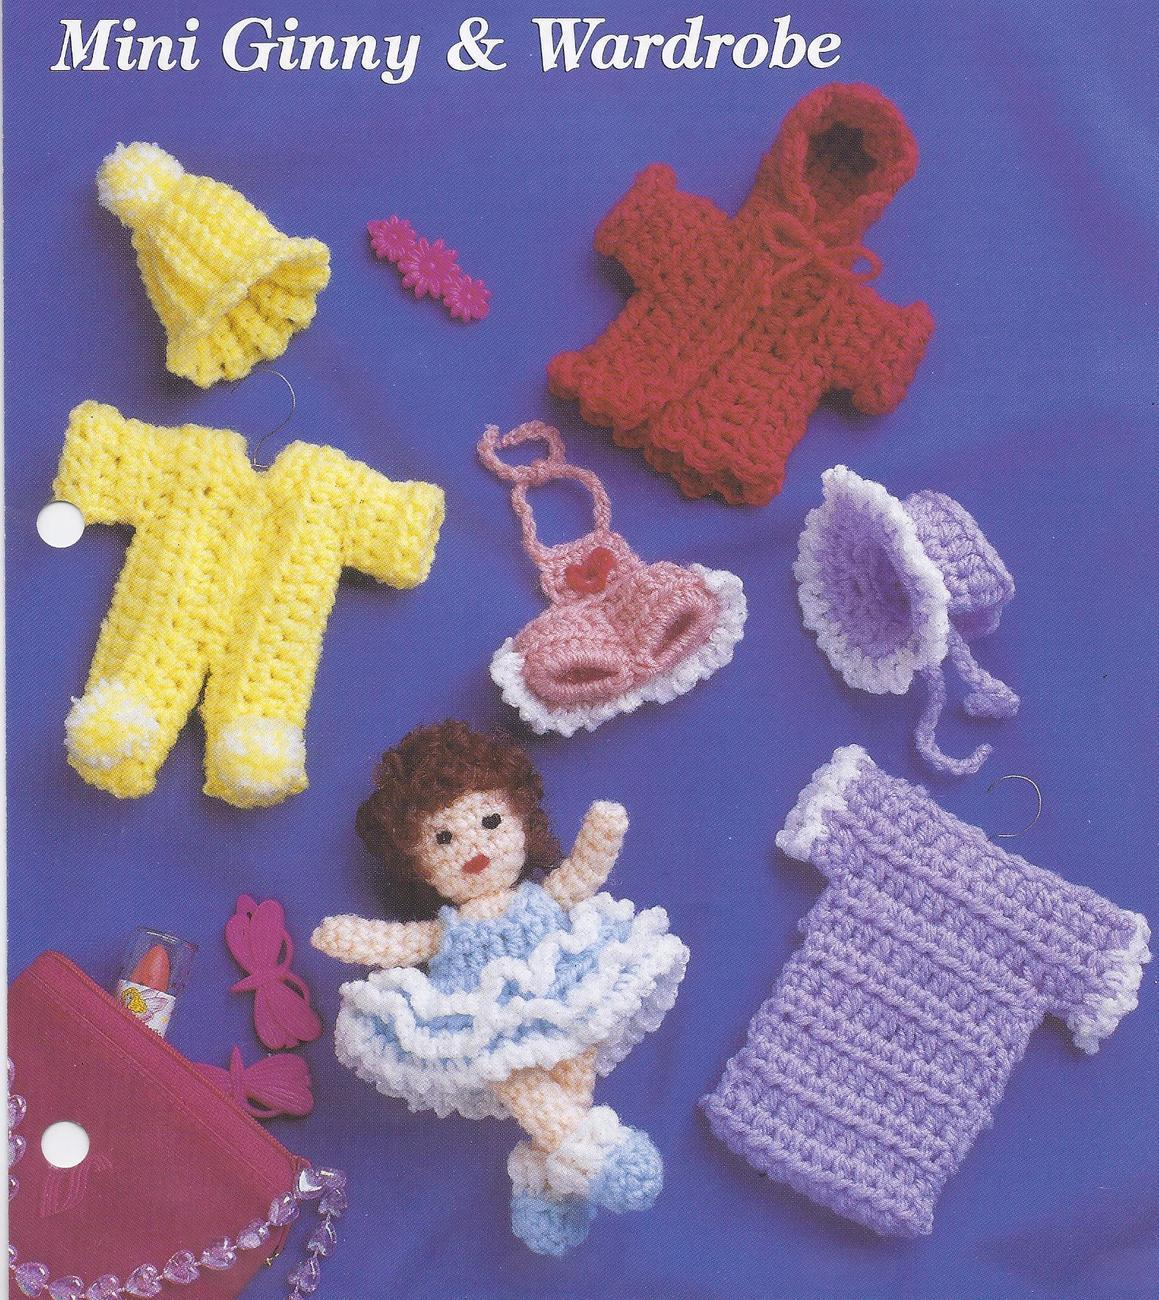 Mini Ginny & Wardrobe~Doll & Clothing Crochet Pattern